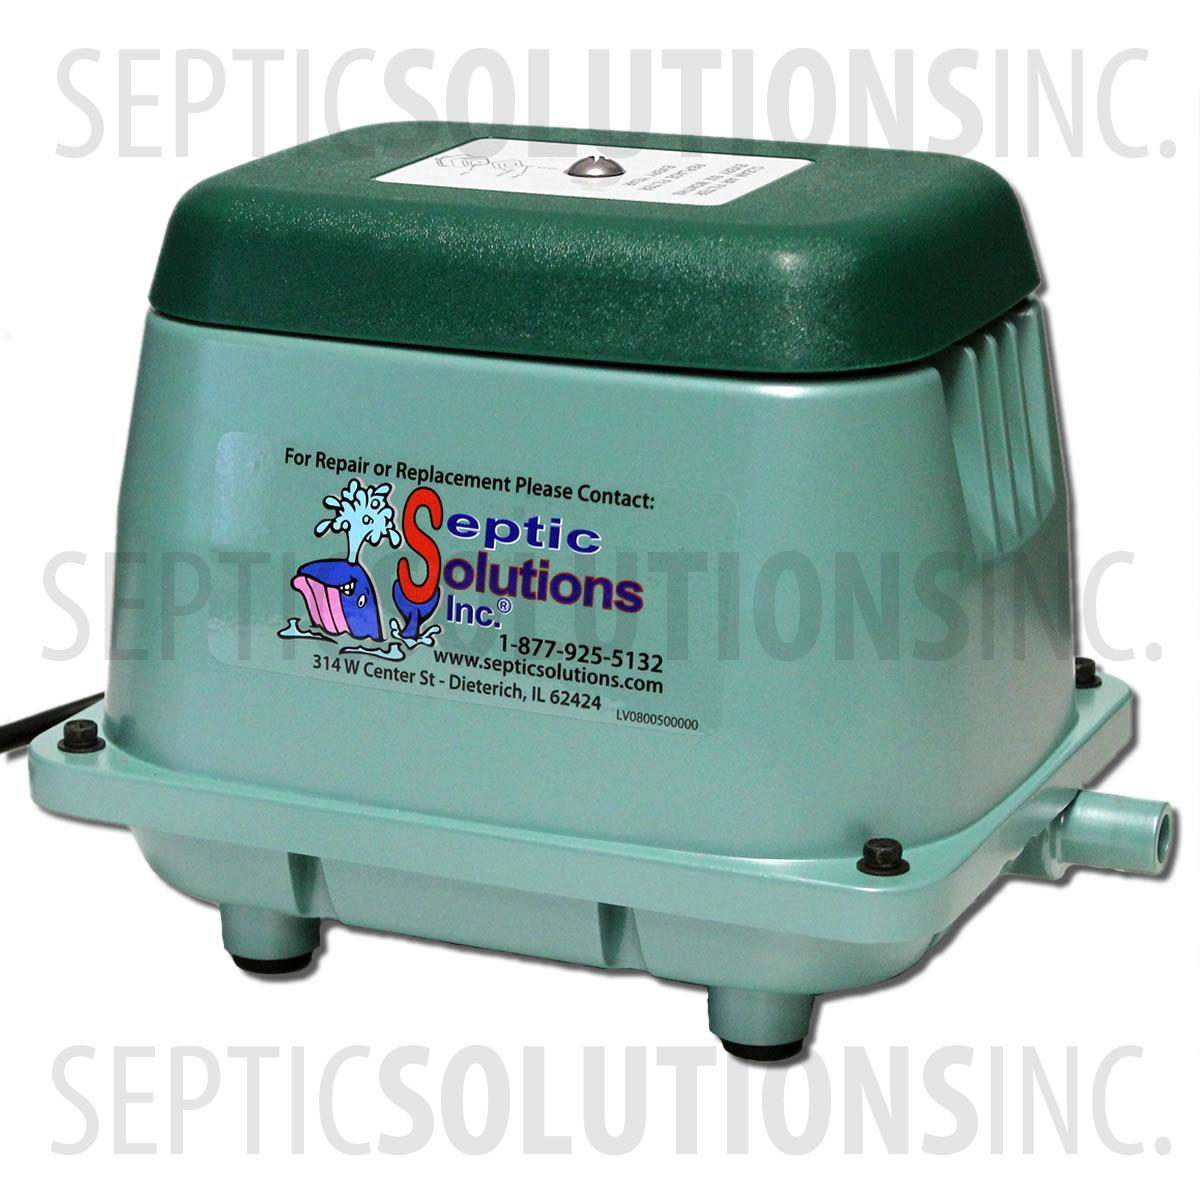 Septic Tank Air Blower Wiring Diagram 37 Images Alarm H500 1w600 Hoot Troy Aerobic System Pumps And Repair Parts